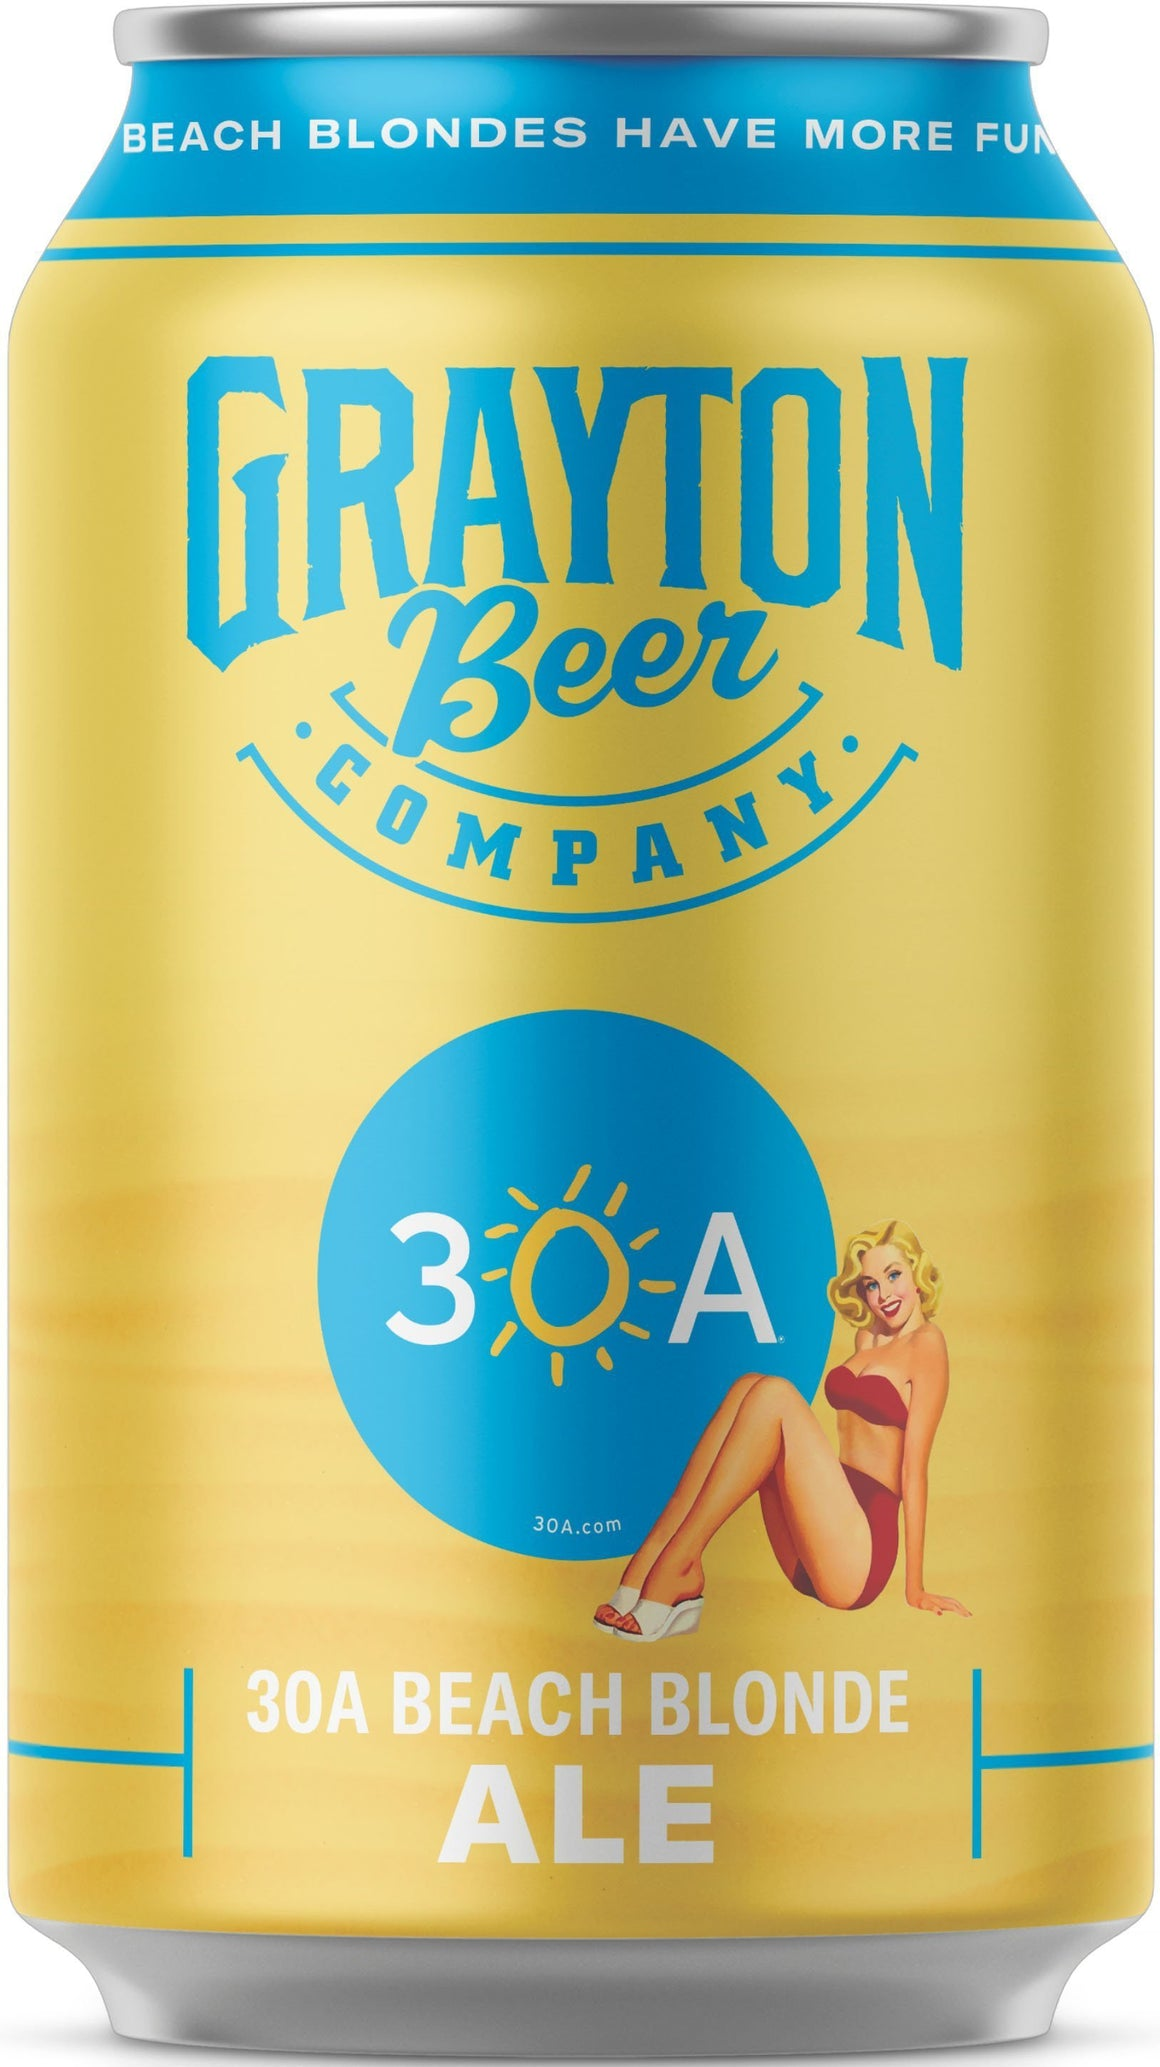 Grayton Beer Company (Santa Rosa Beach, Florida) Craft Beer Grayton Beer 30A 6-Pack